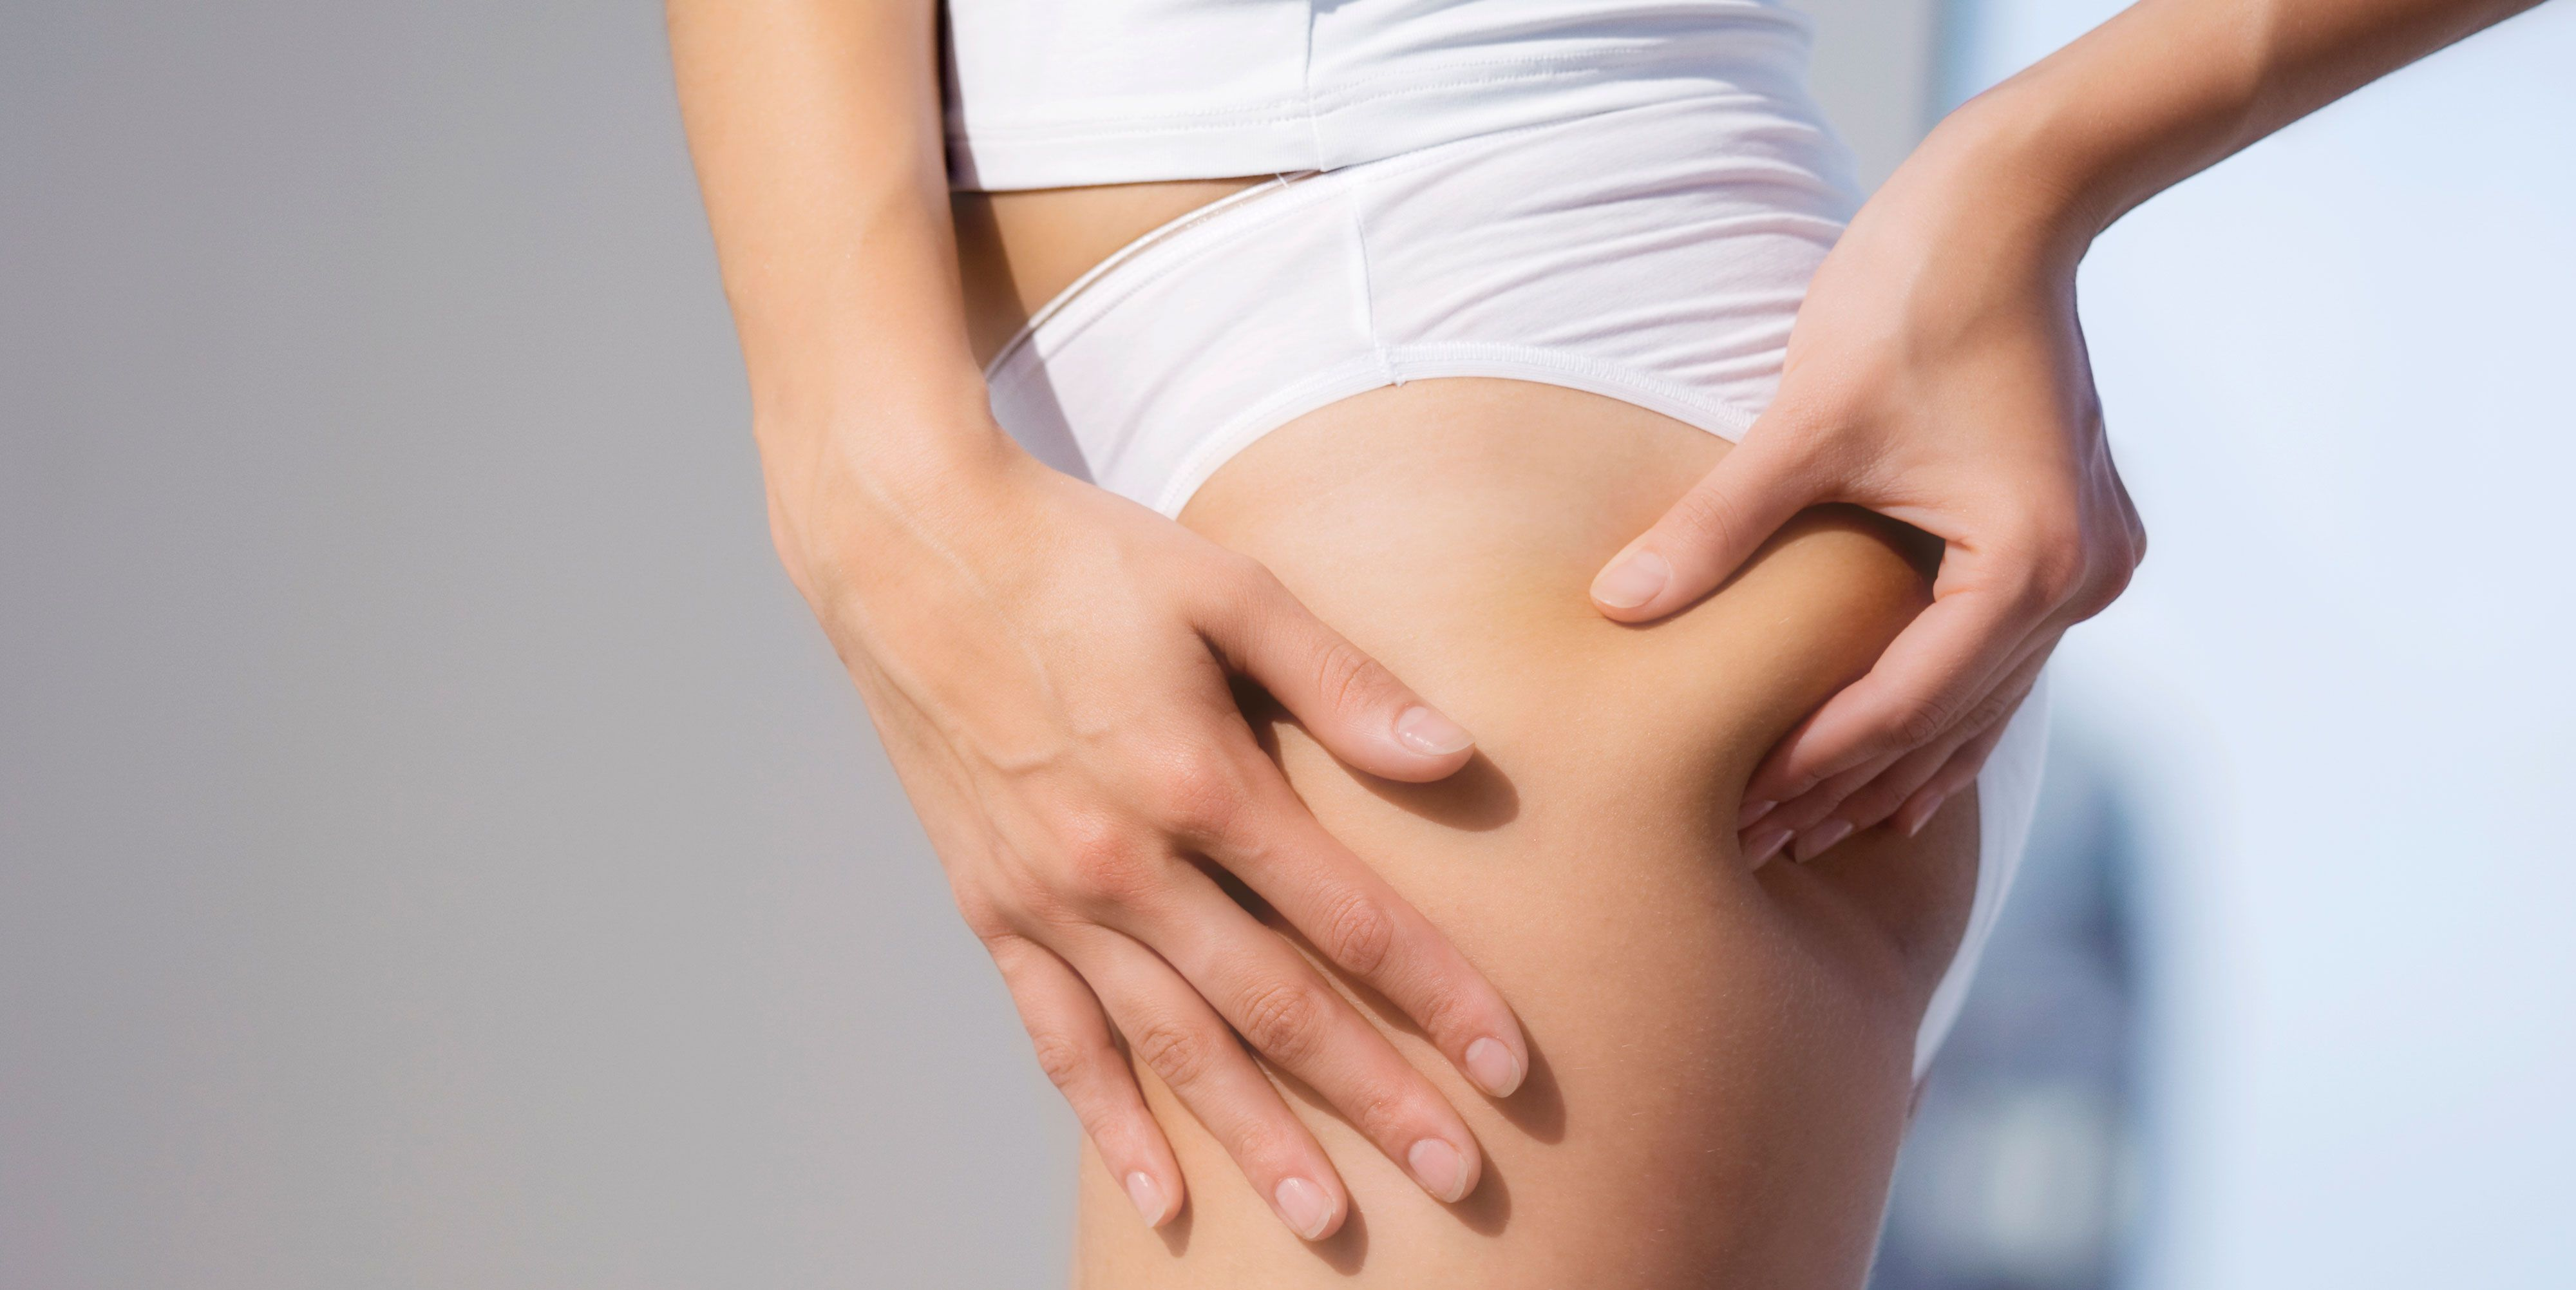 How To Get Rid Of Cellulite On Thighs Legs And Butt Cellulite